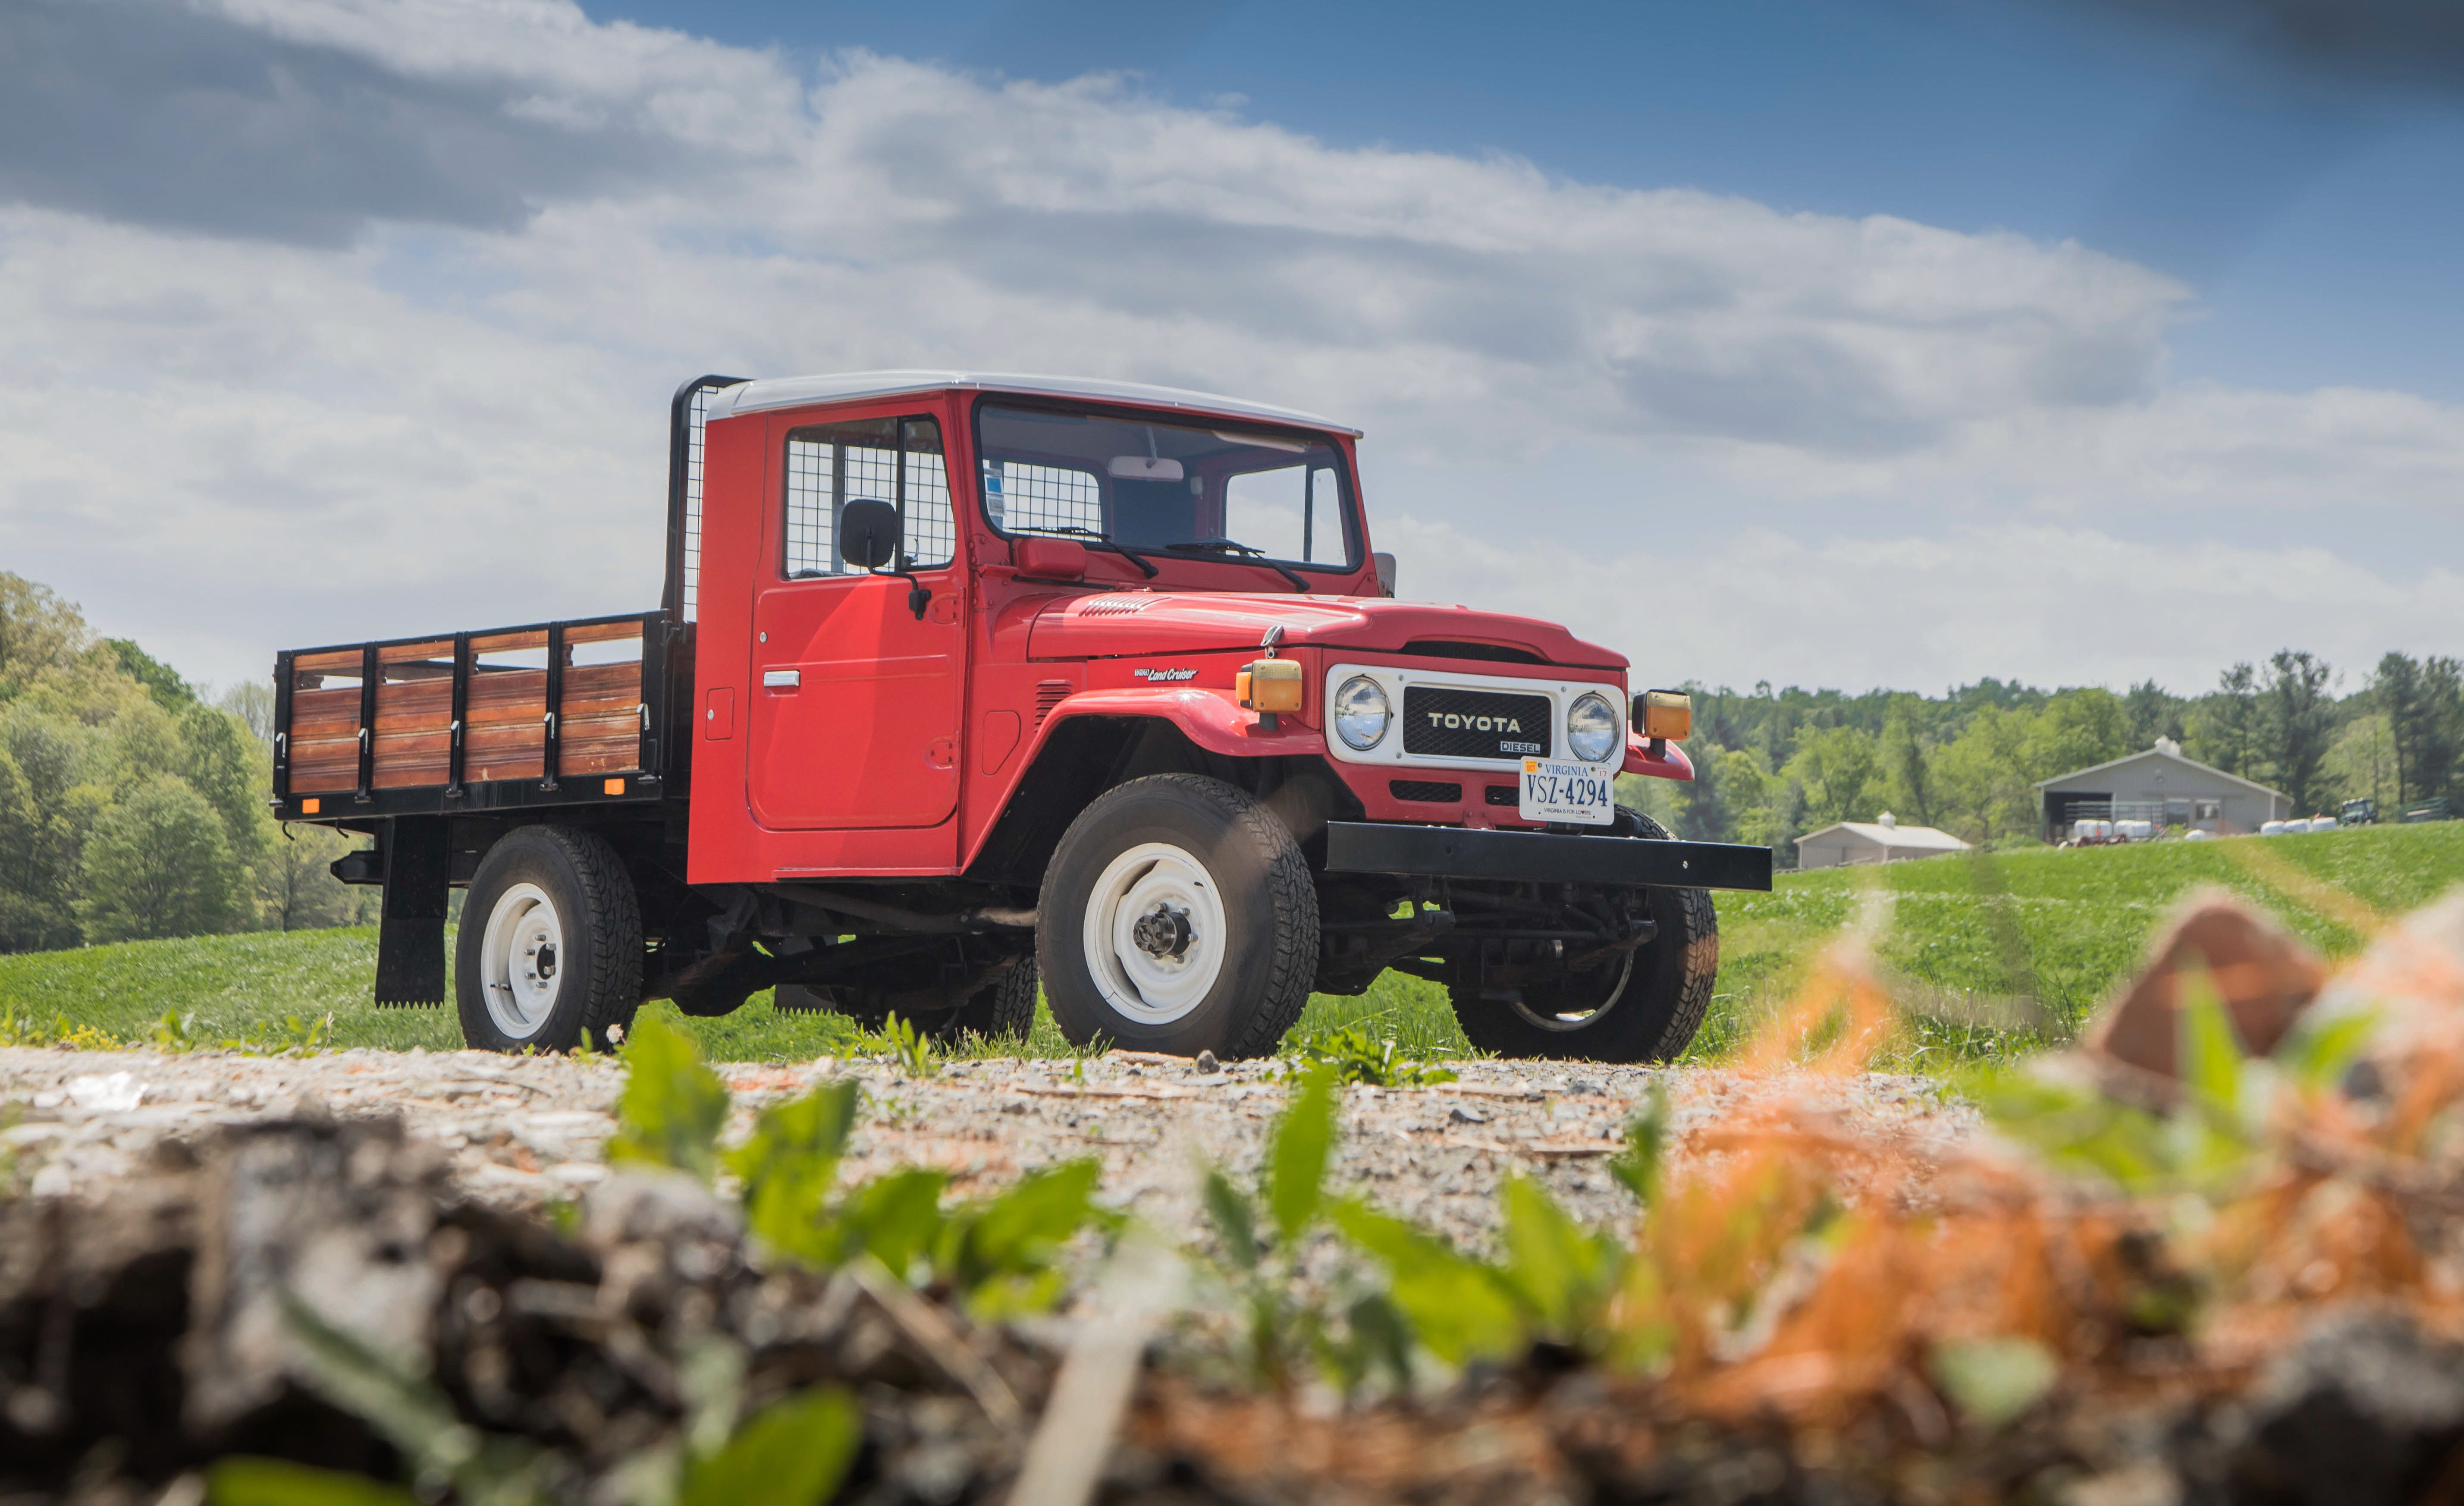 Importing an Iconic FJ40 Toyota Land Cruiser from South